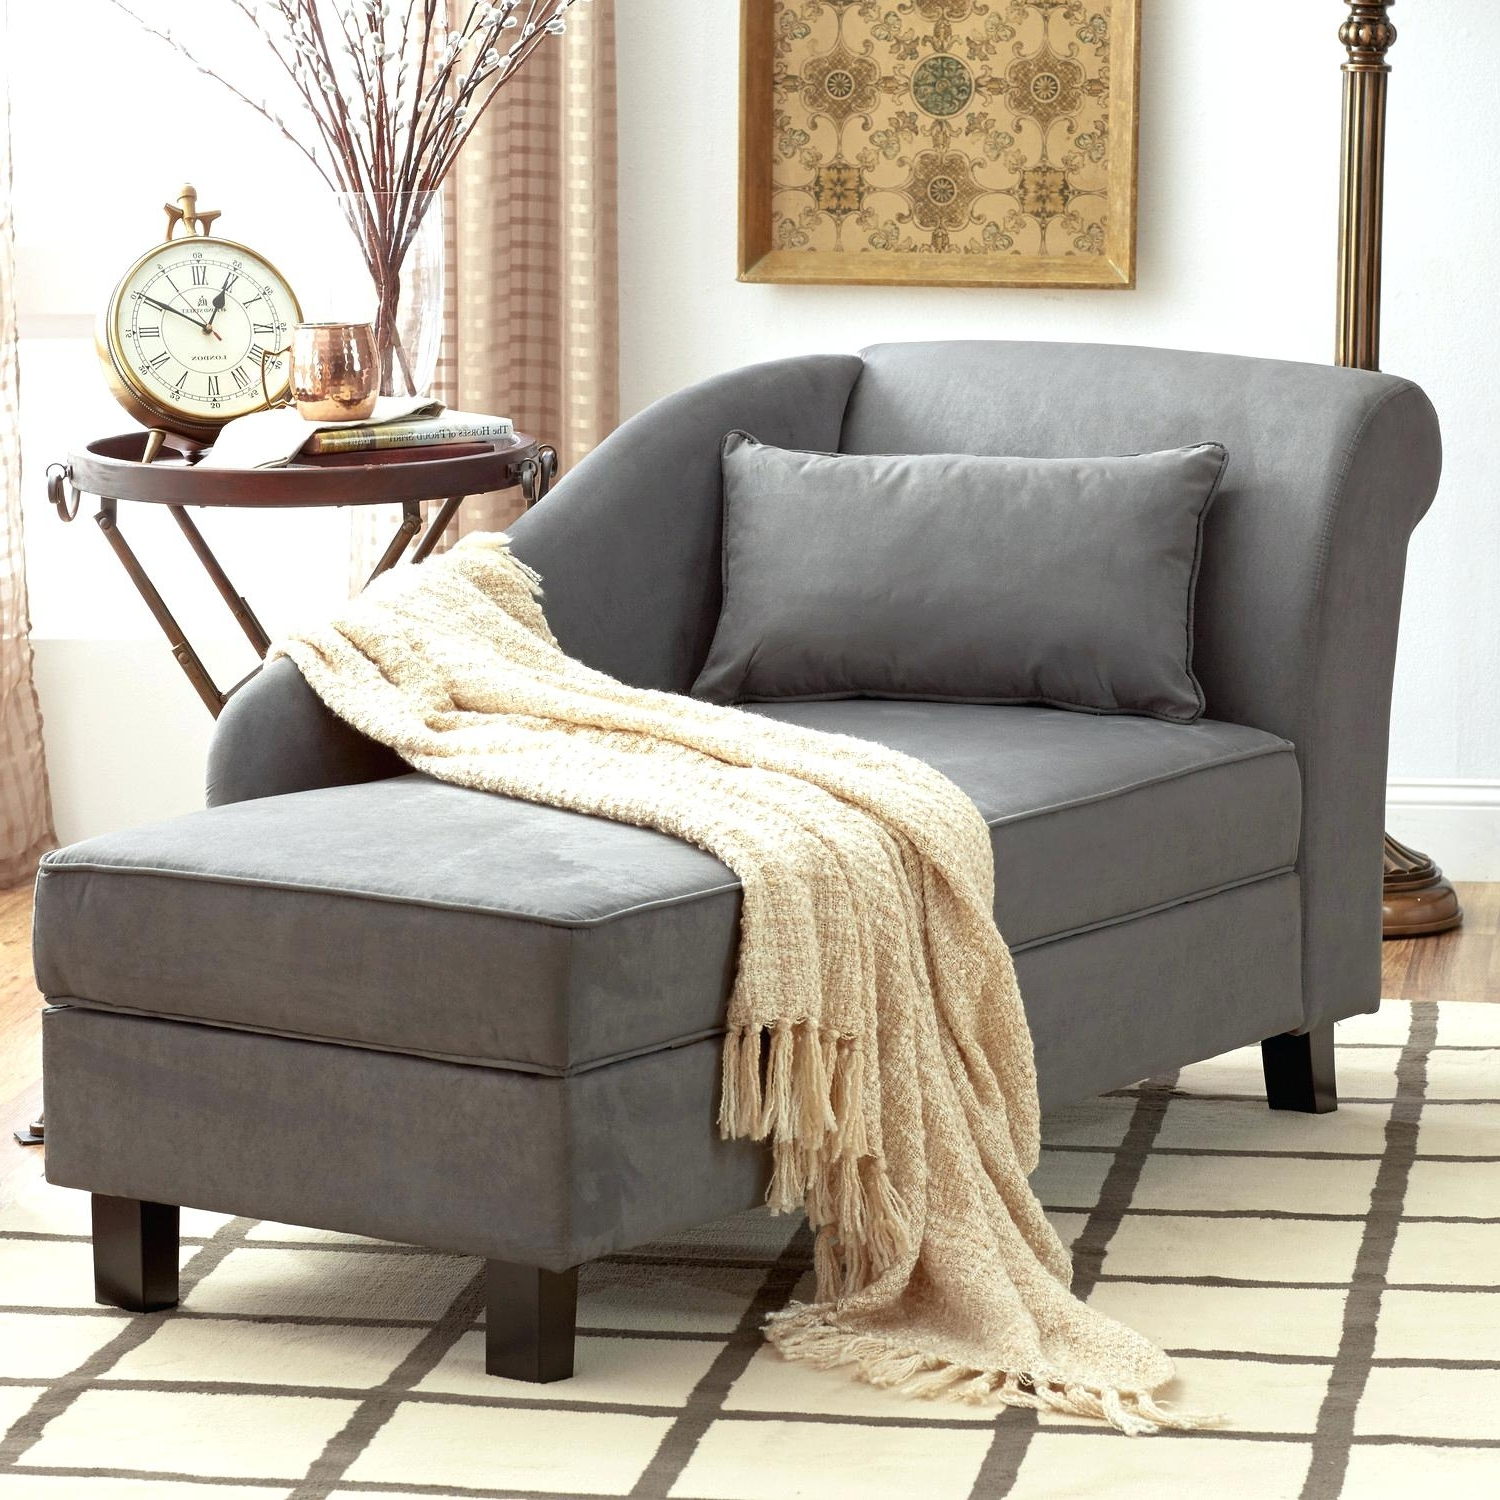 Picture 21 Of 39 – Indoor Wicker Chairs Elegant Chaise Cheap Within Most Current Elegant Chaise Lounge Chairs (View 14 of 15)